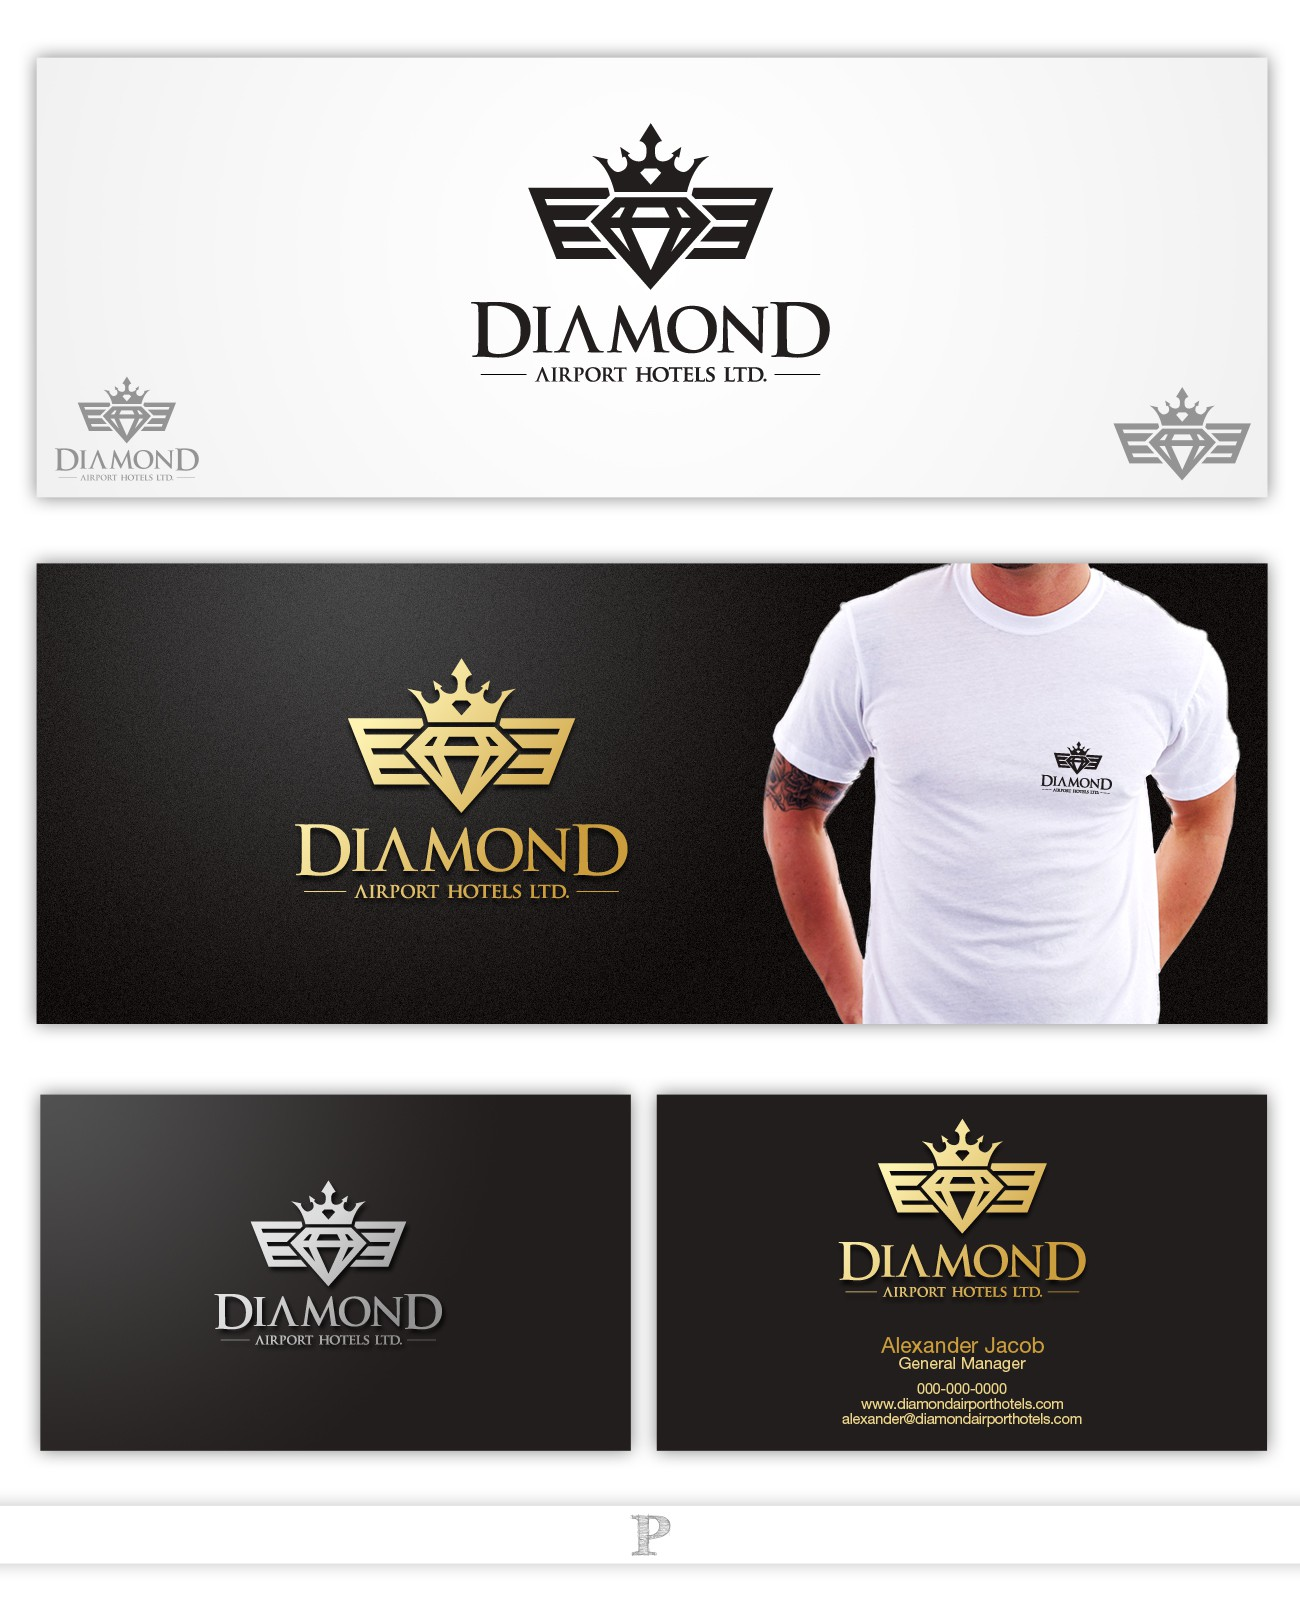 Create the next logo for Diamond Airport Hotels Ltd.